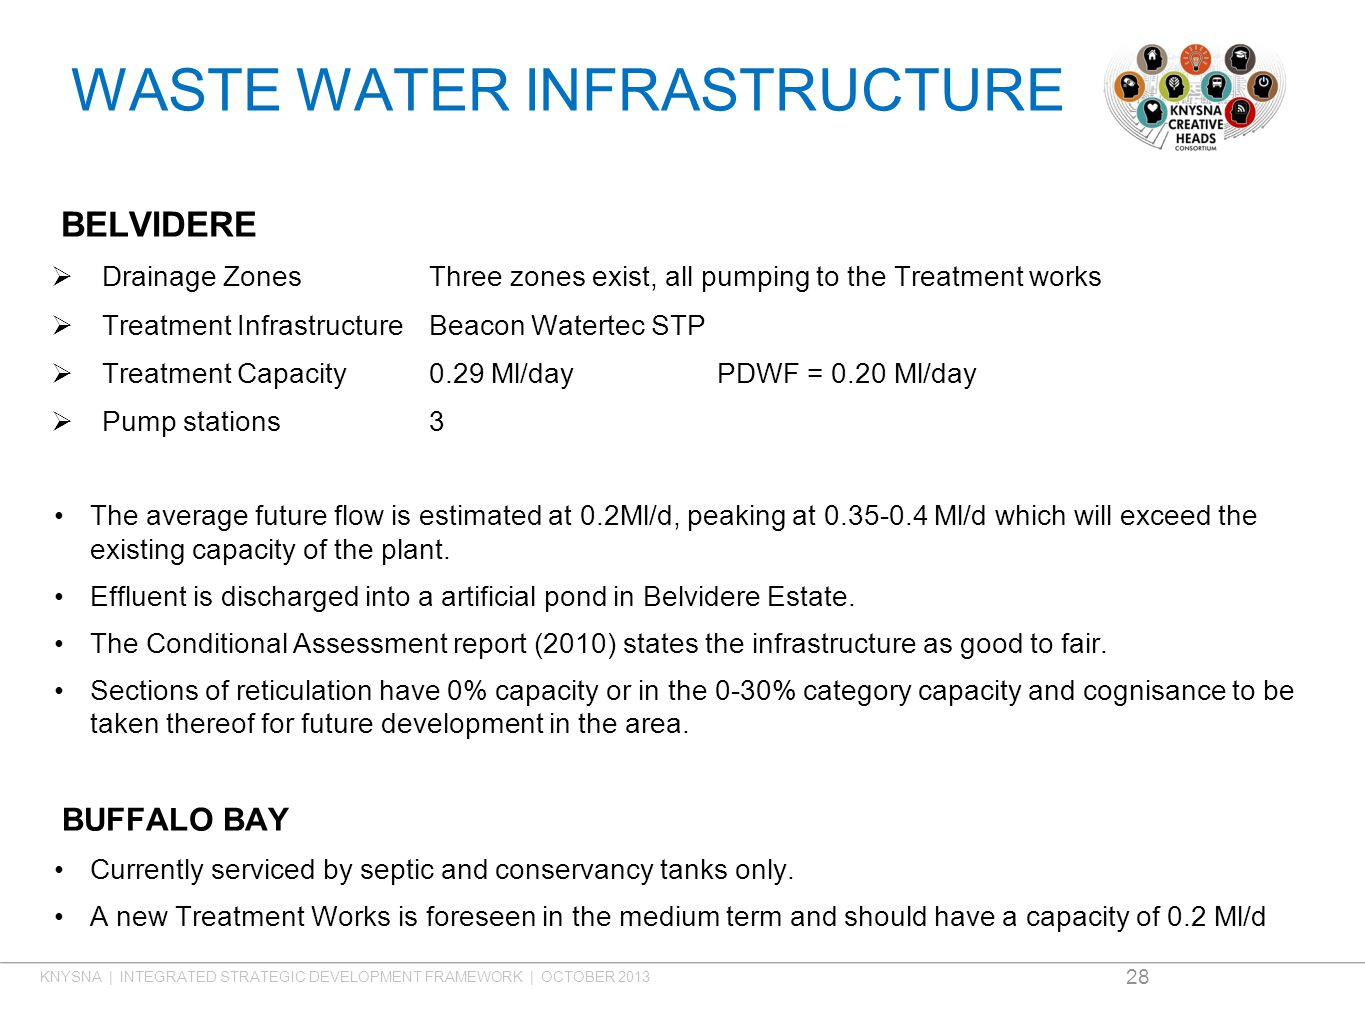 WASTE WATER INFRASTRUCTURE BELVIDERE  Drainage ZonesThree zones exist, all pumping to the Treatment works  Treatment InfrastructureBeacon Watertec STP  Treatment Capacity0.29 Ml/dayPDWF = 0.20 Ml/day  Pump stations3 The average future flow is estimated at 0.2Ml/d, peaking at 0.35-0.4 Ml/d which will exceed the existing capacity of the plant.